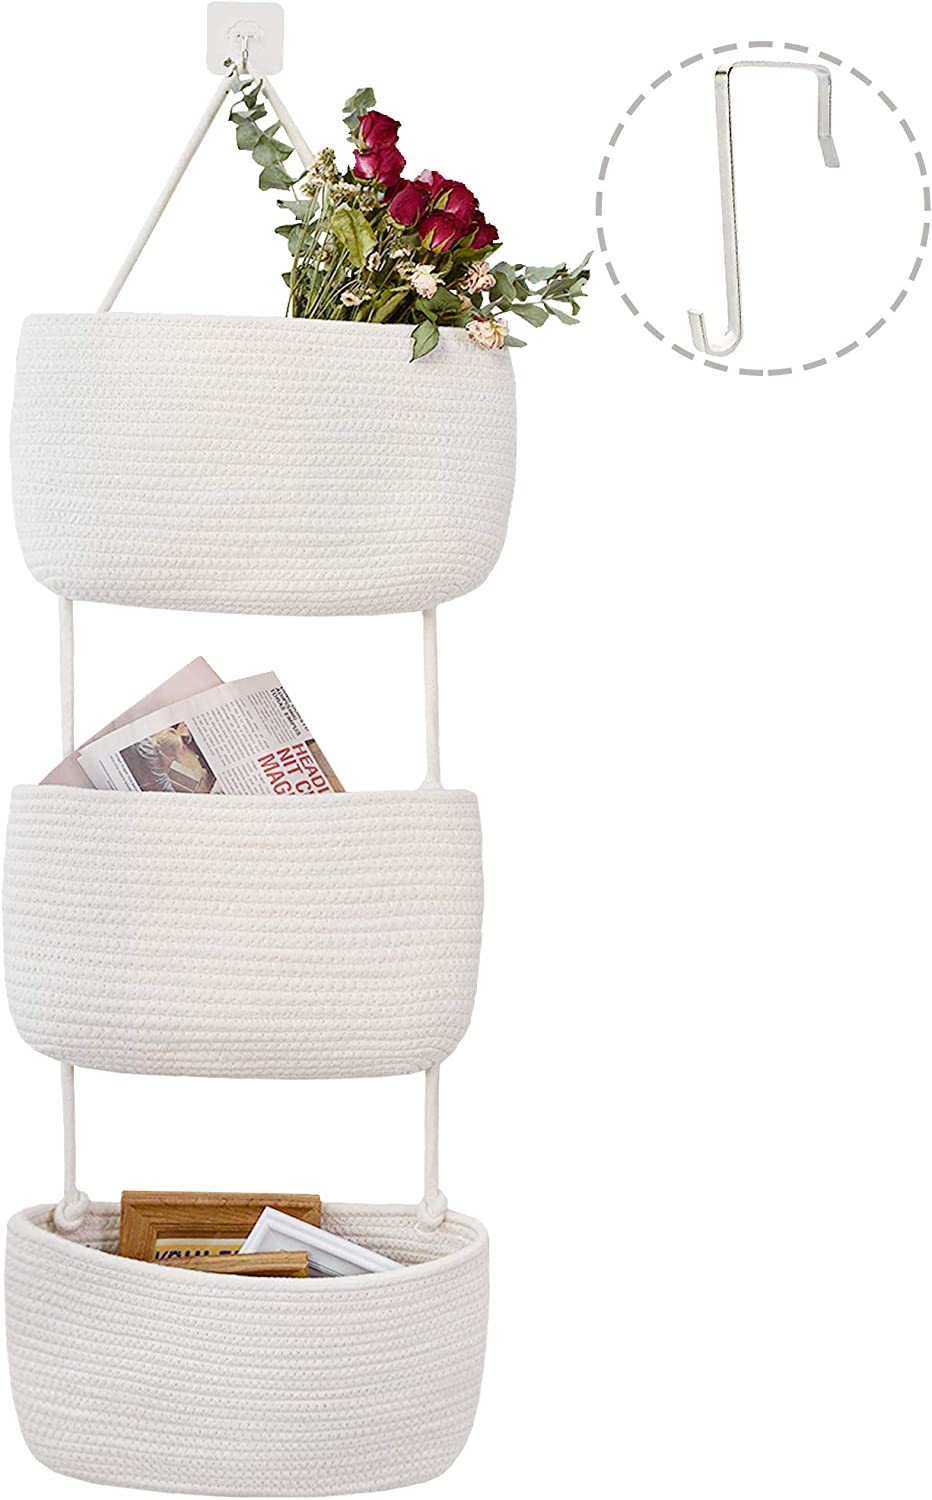 Oklahoma City Mall JS HOME Over The Door Hanging Wall Sturdy Cotton Basket Ha Ranking TOP11 Rope